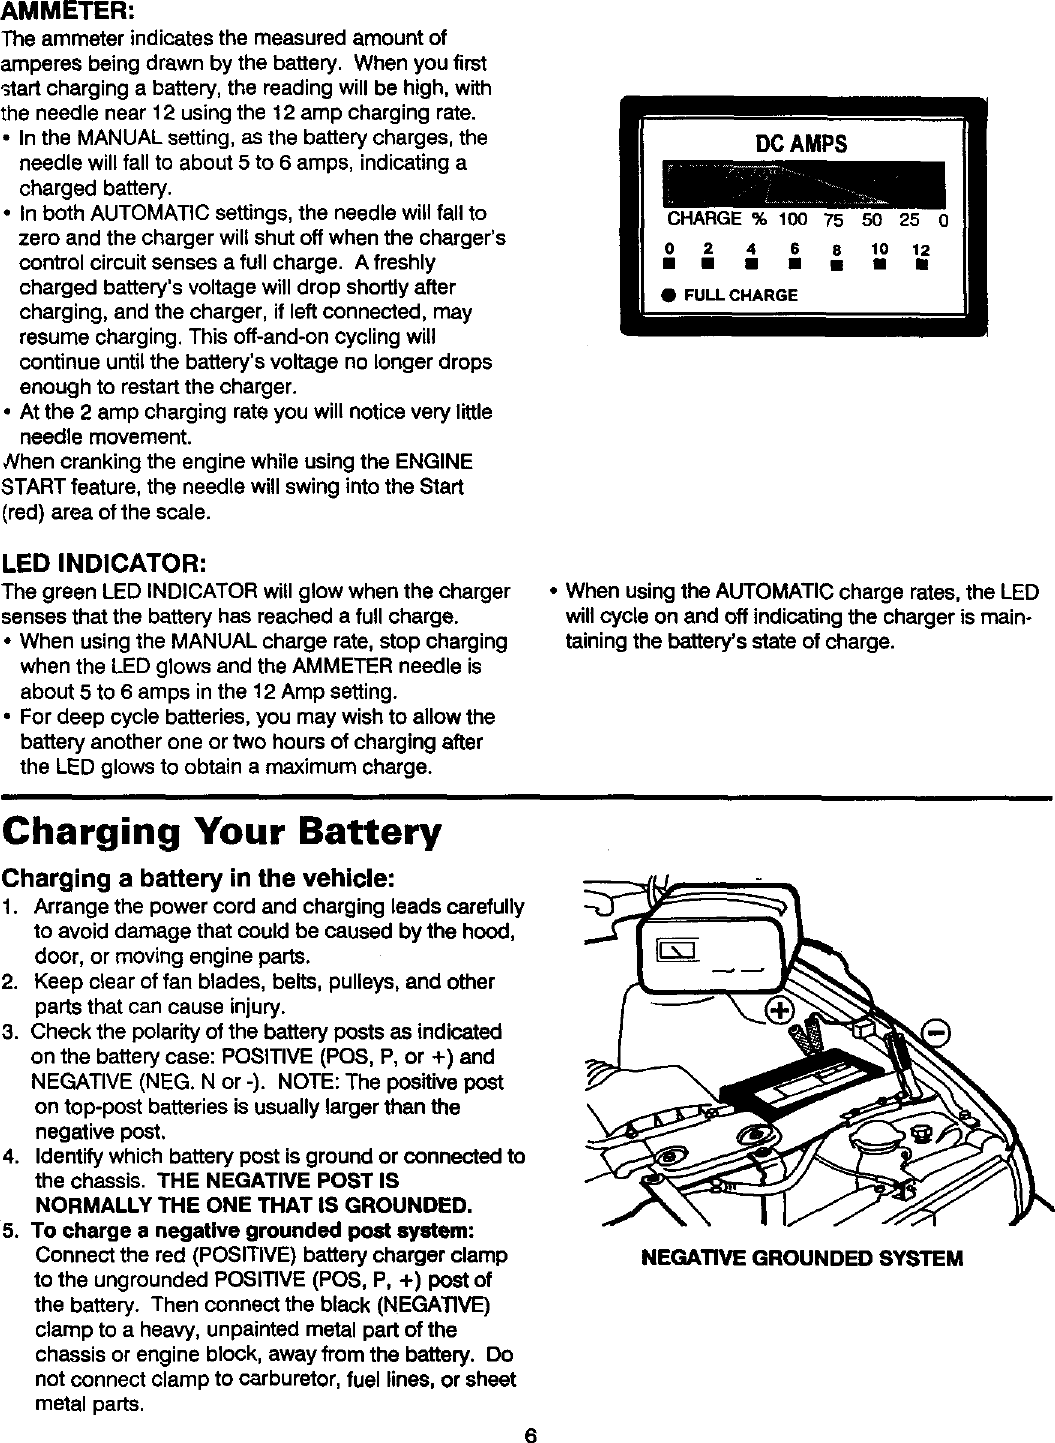 Diehard 20071312 User Manual Battery Charger Manuals And Guides L0305326 Charge Current Indicators Controlcircuit Circuit Diagram Page 7 Of 12